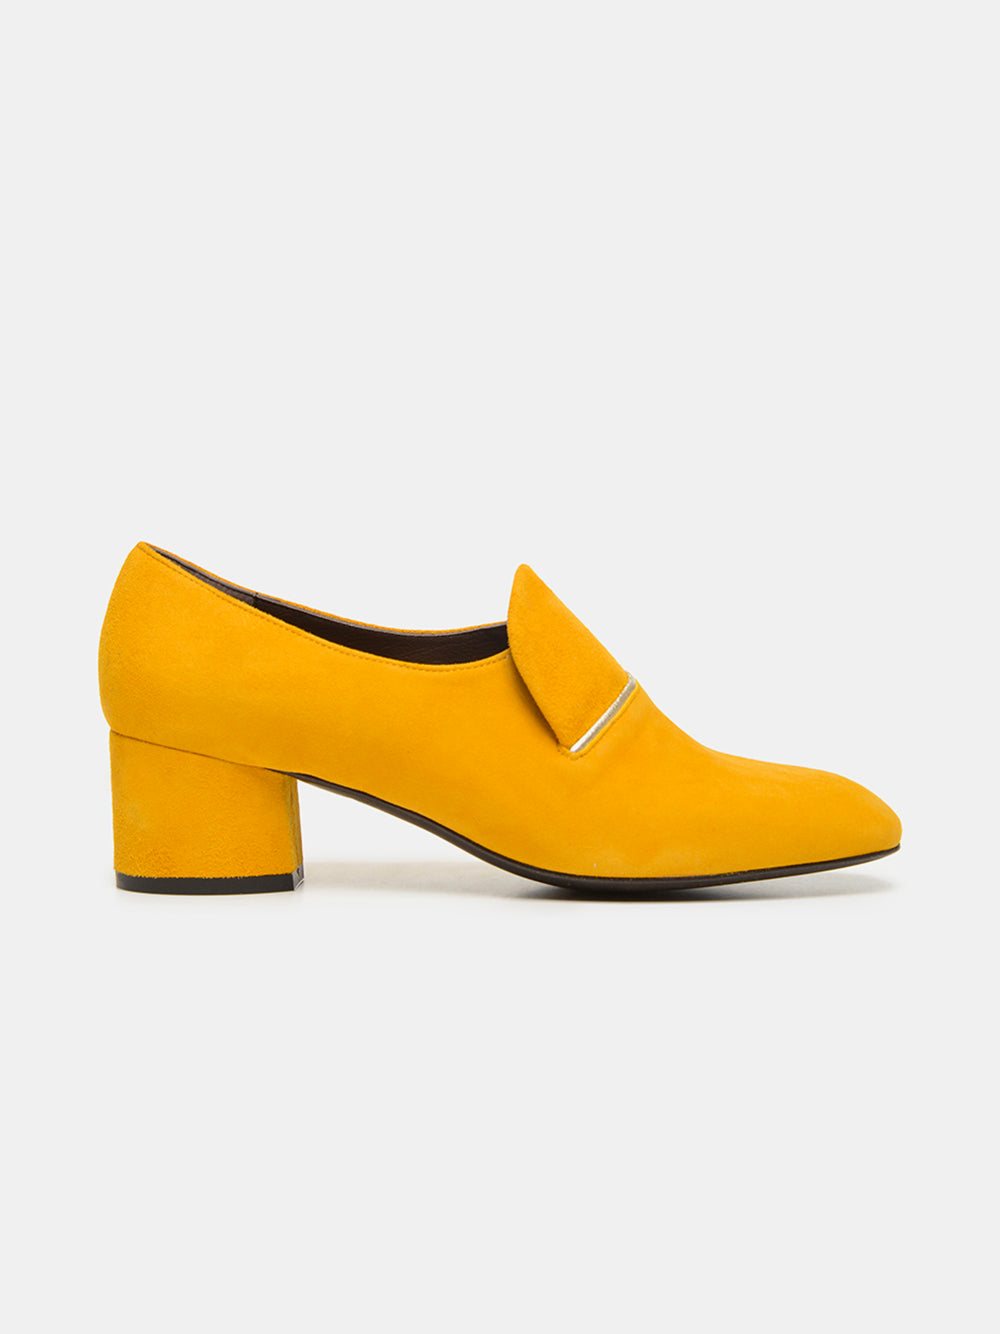 coclico modern, elegant & classic mid-heeled loafer in kid suede with metallic piping